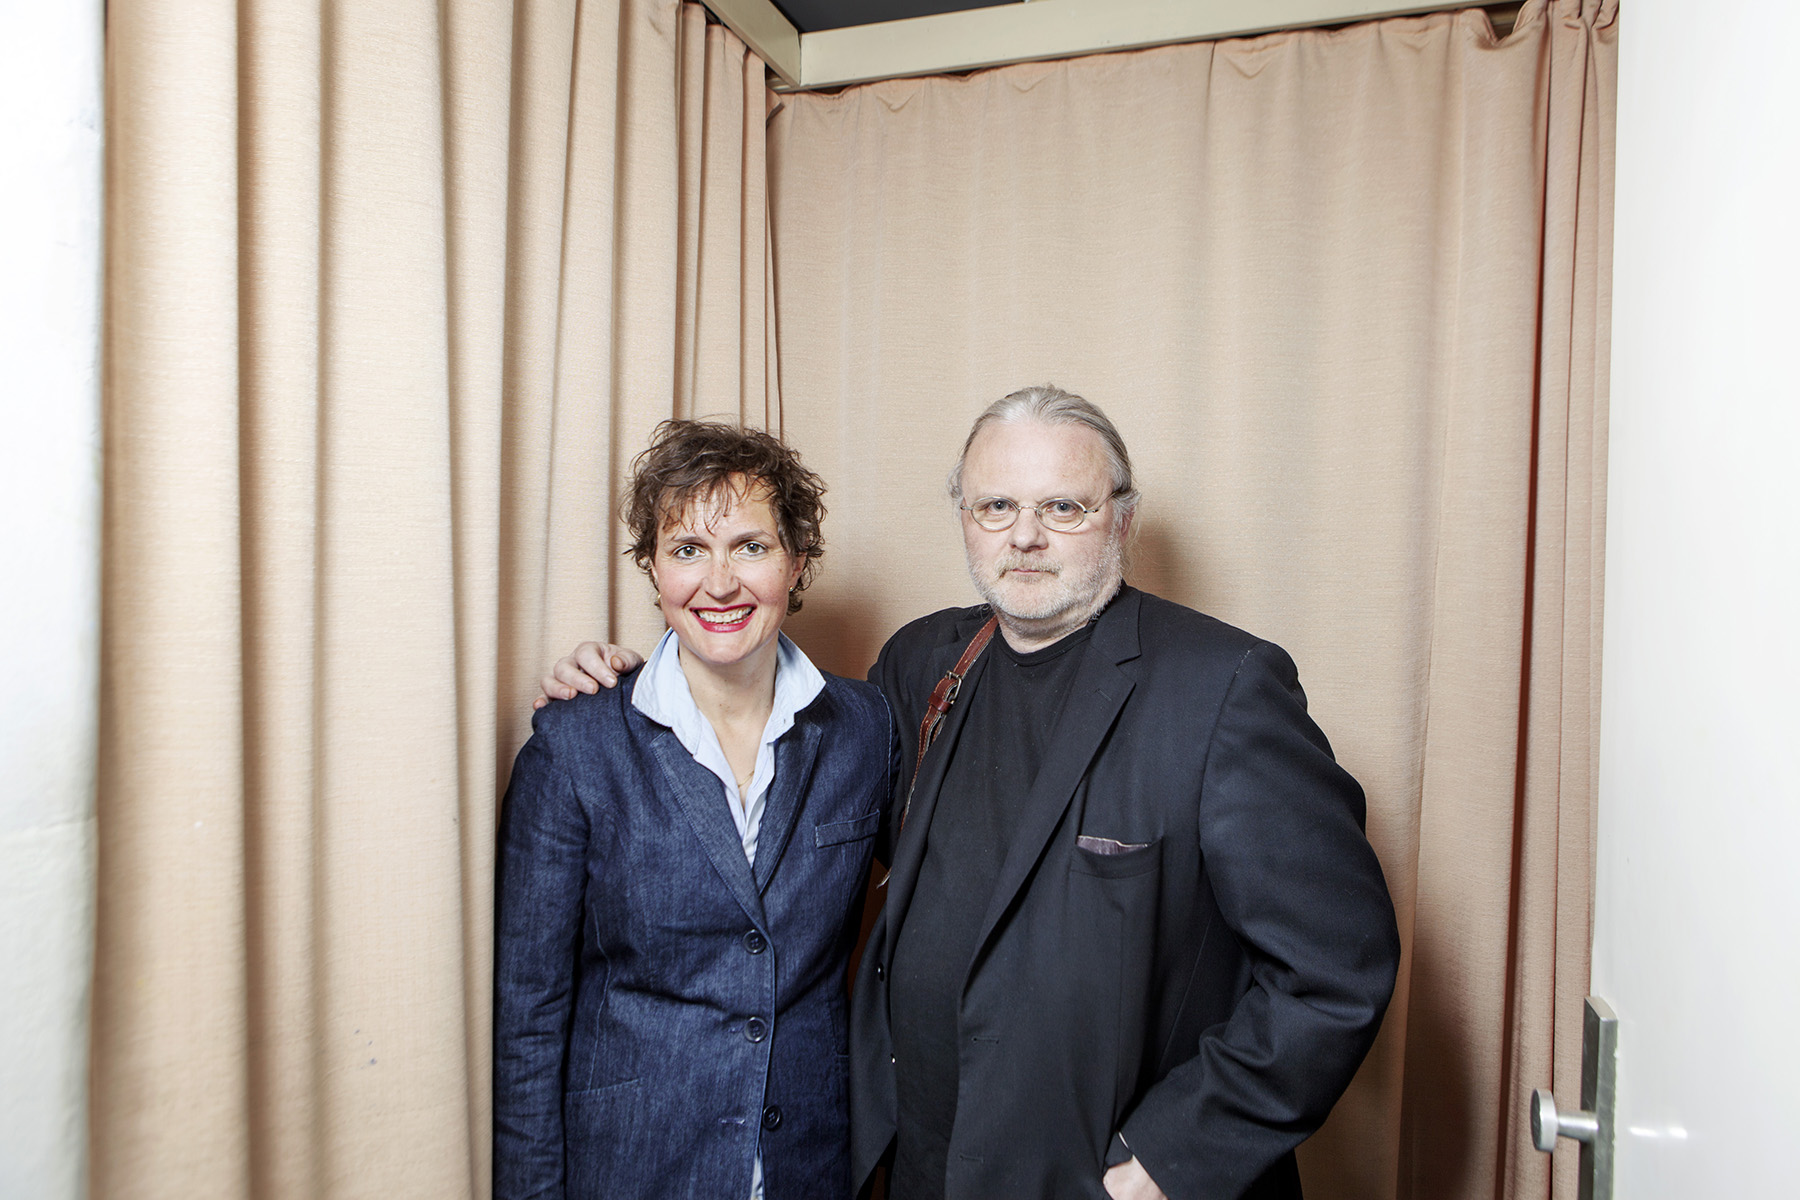 Barbara Frey und Jan Fosse in the Viennese Akademietheater